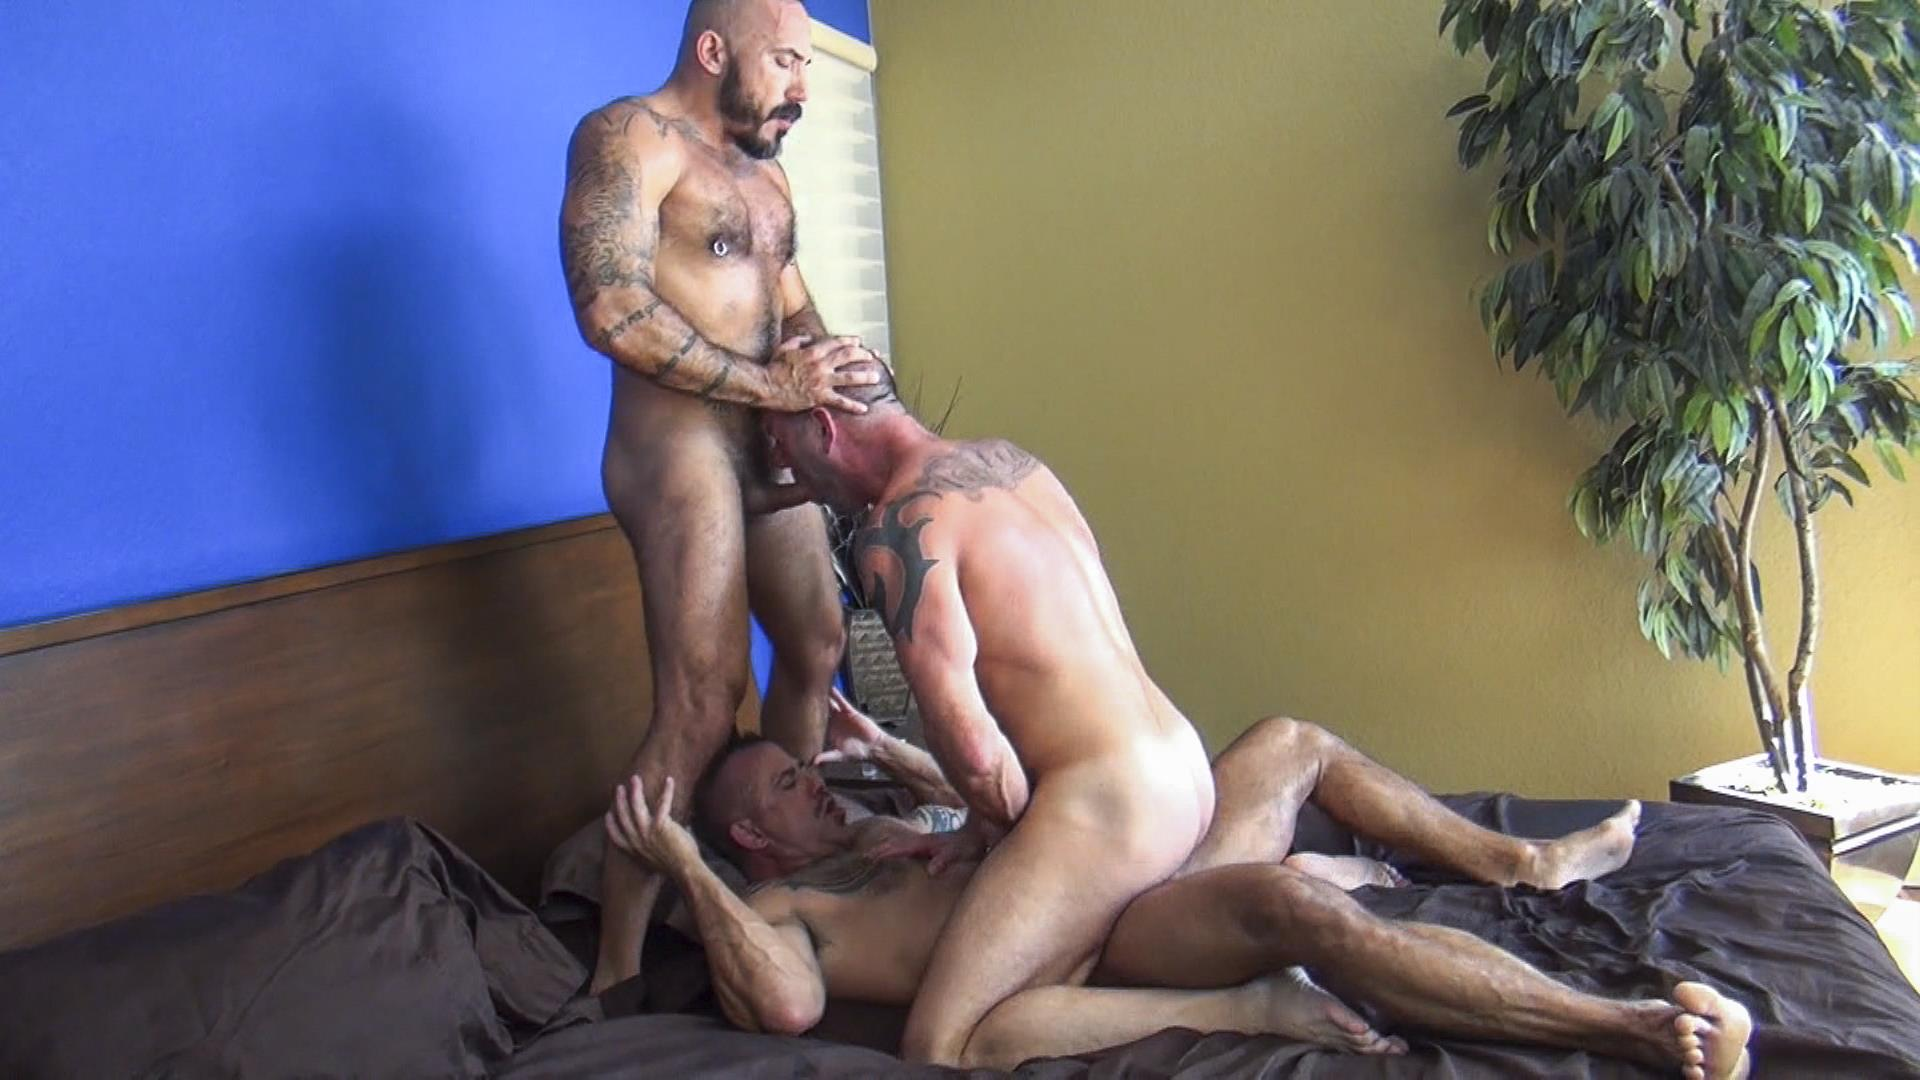 Raw-Fuck-Club-Alessio-Romero-and-Jon-Galt-and-Vic-Rocco-Hairy-Muscle-Daddy-Bareback-Amateur-Gay-Porn-4 Hairy Muscle Daddy Threeway Double Bareback Penetration